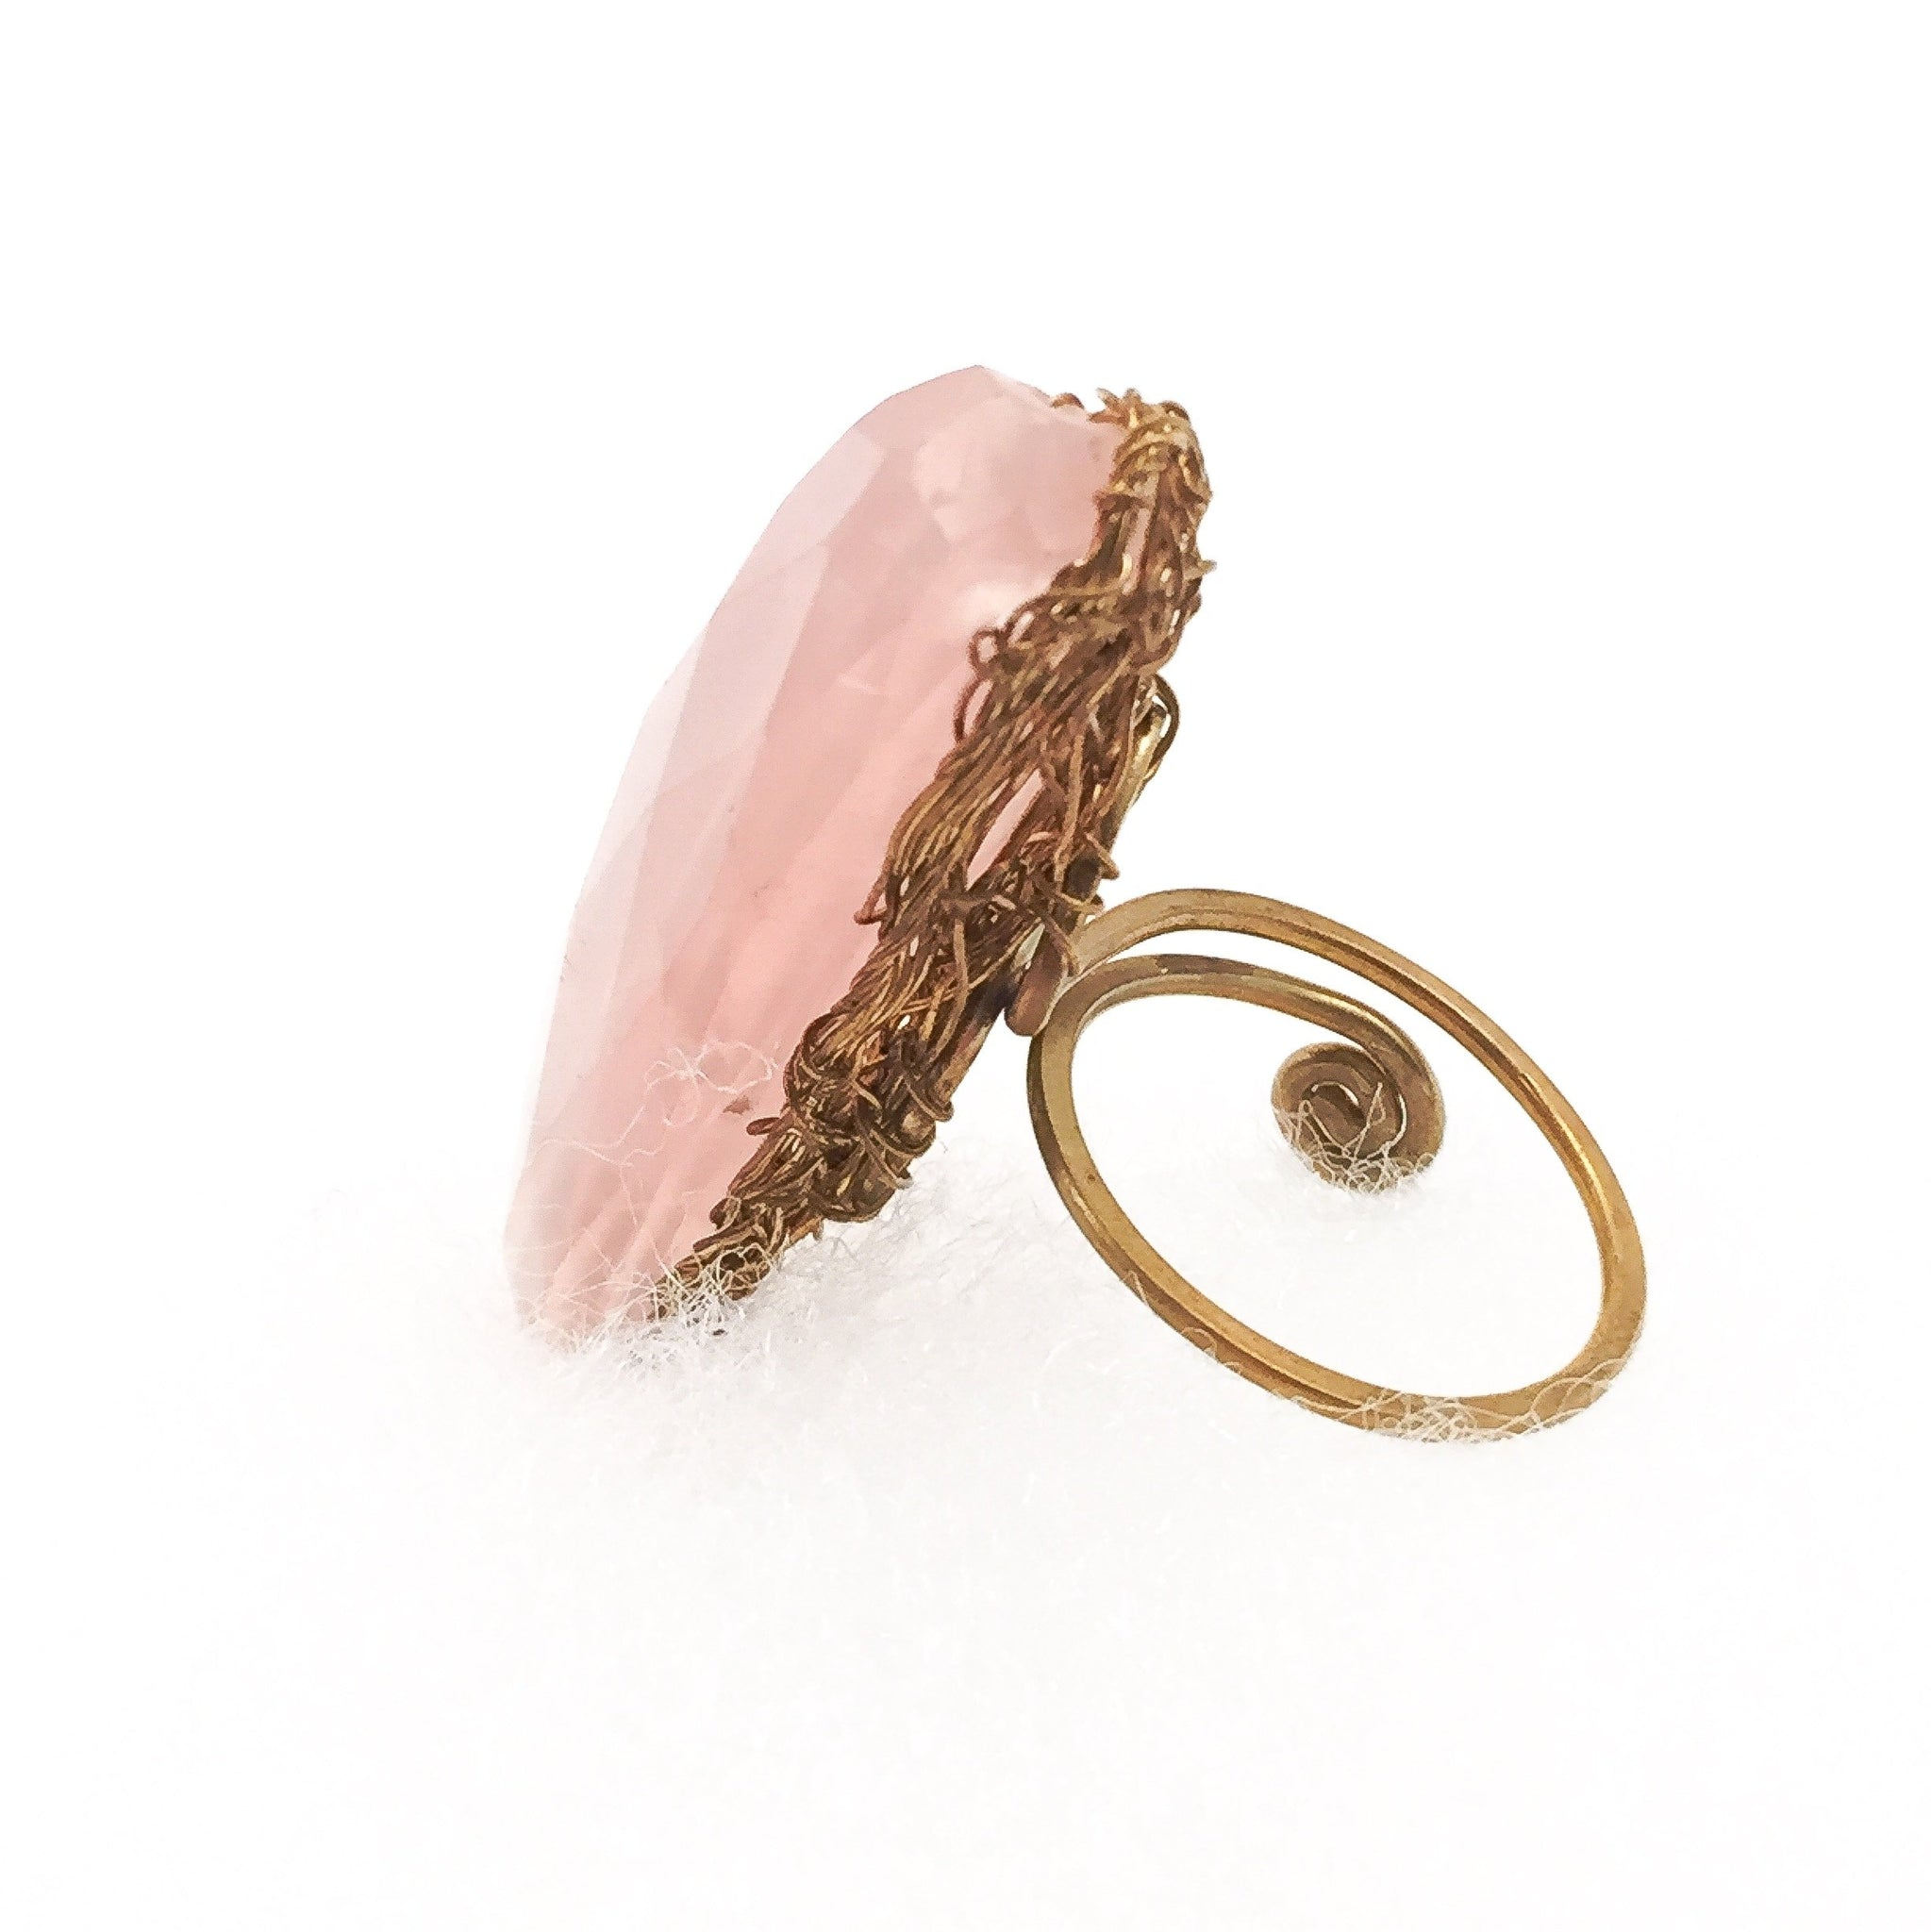 ritratto products ring rose milky quartz with pomellato and diamonds of gold white copy rings